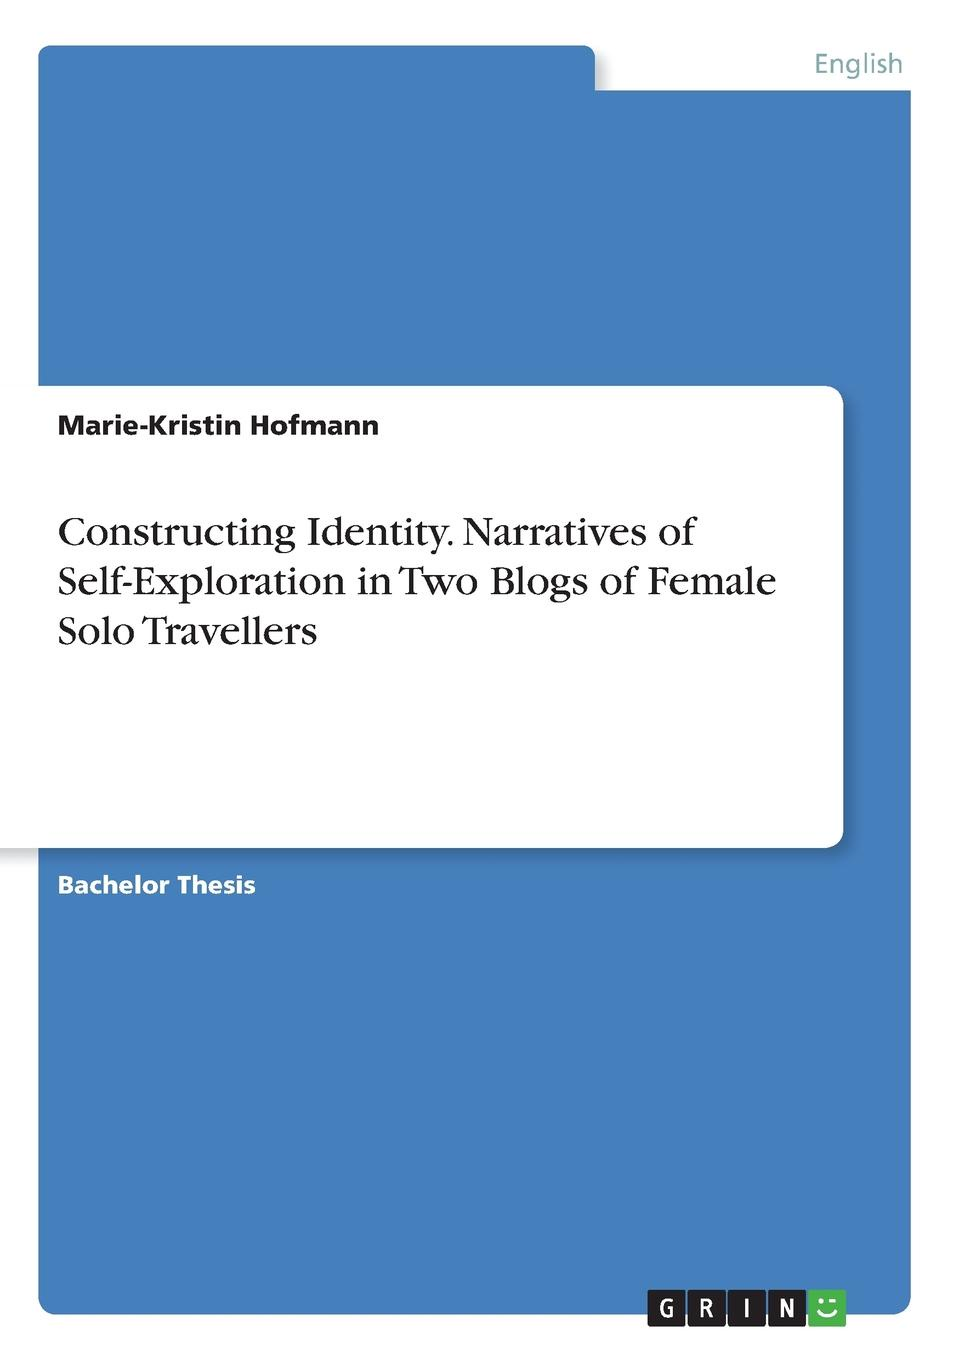 Constructing Identity. Narratives of Self-Exploration in Two Blogs of Female Solo Travellers. Marie-Kristin Hofmann